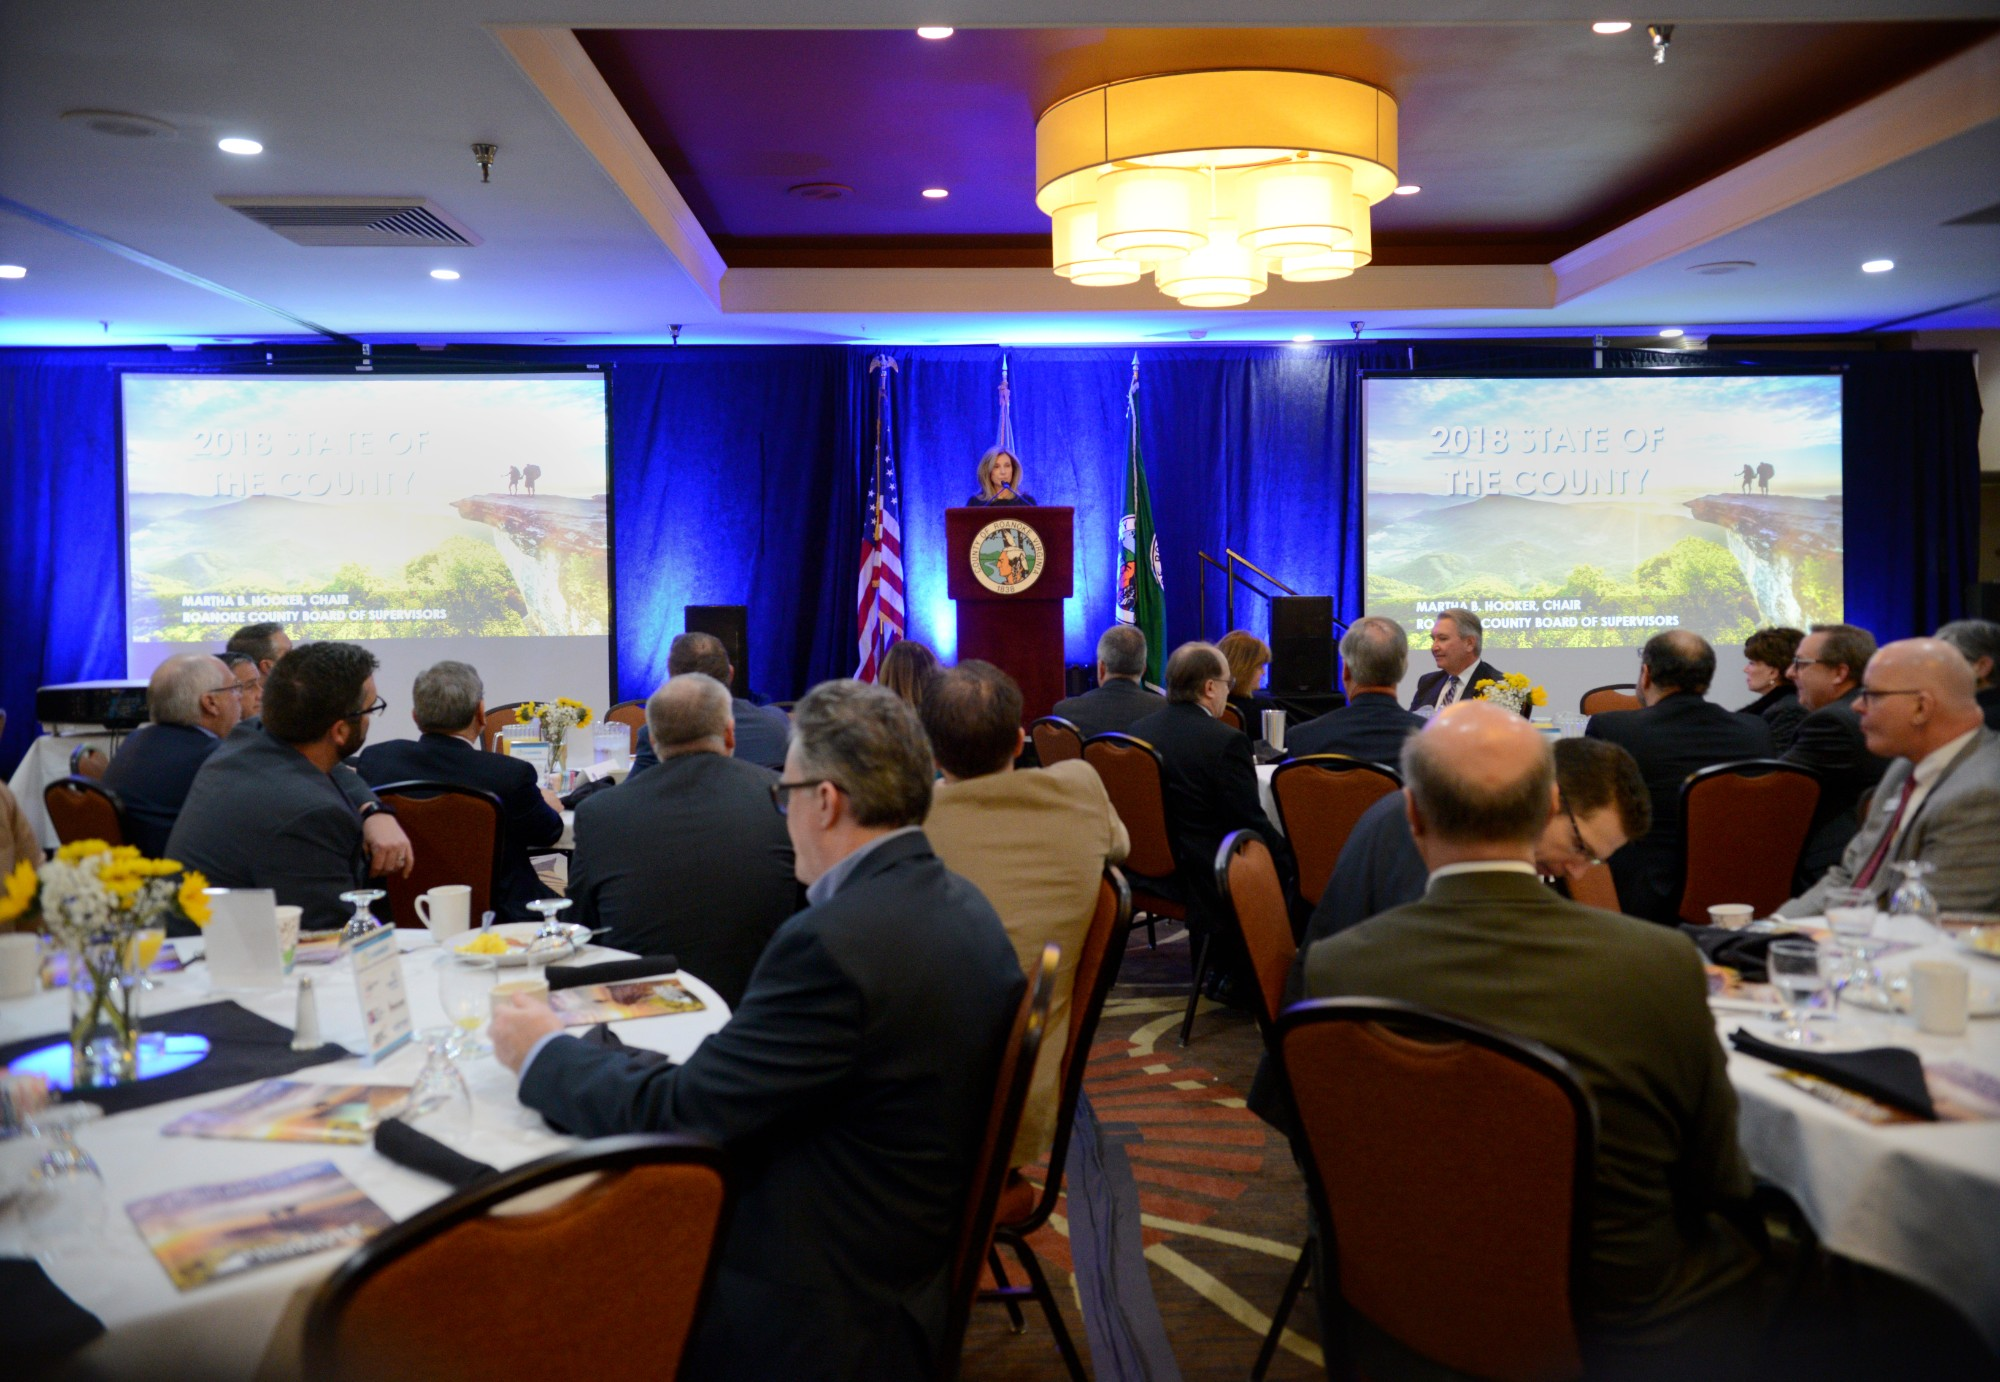 State of the County 50